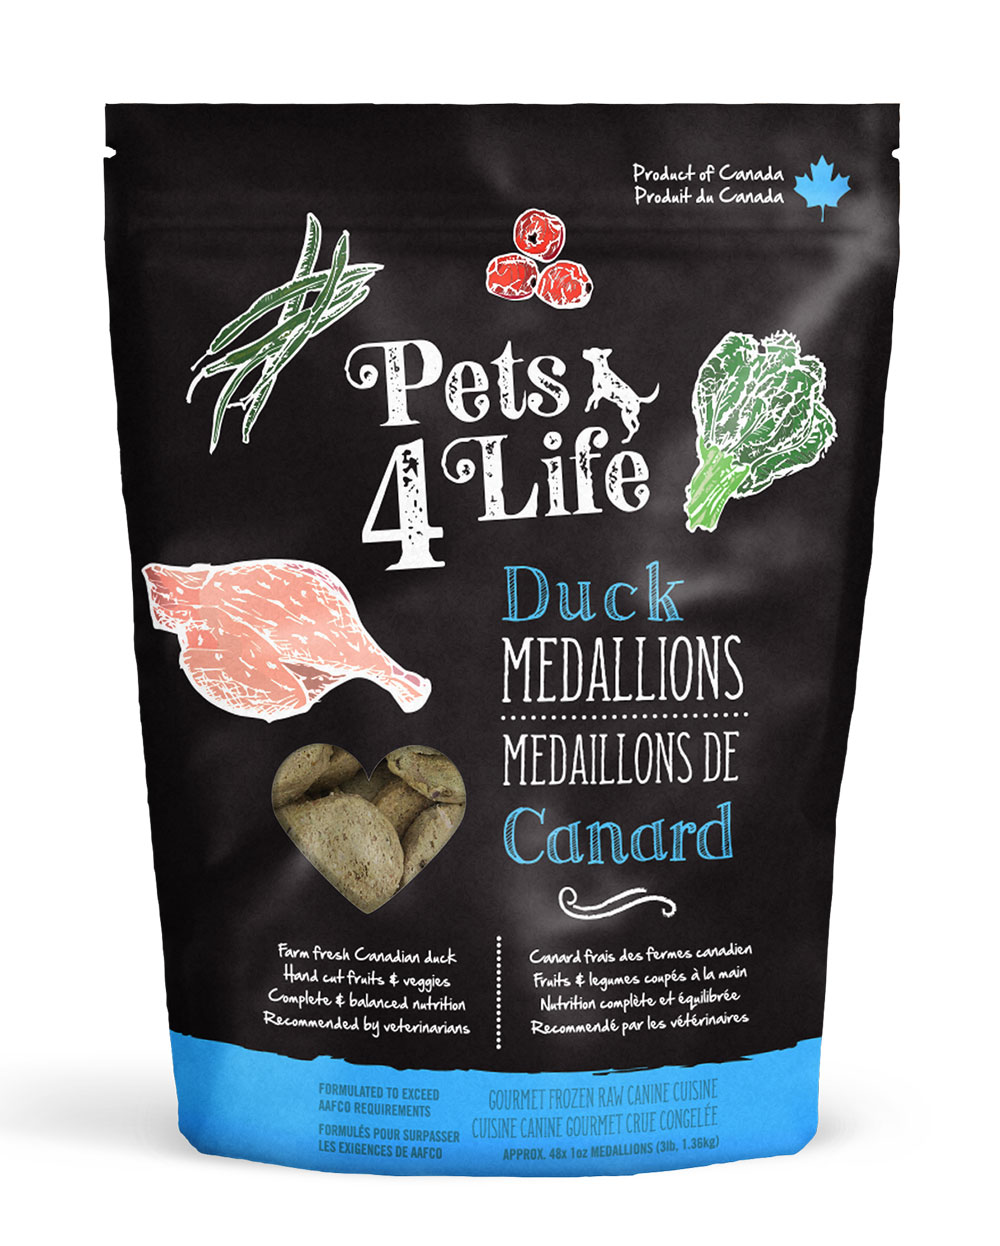 Pets 4 Life Canine Duck Medallions Raw Dog Food Image